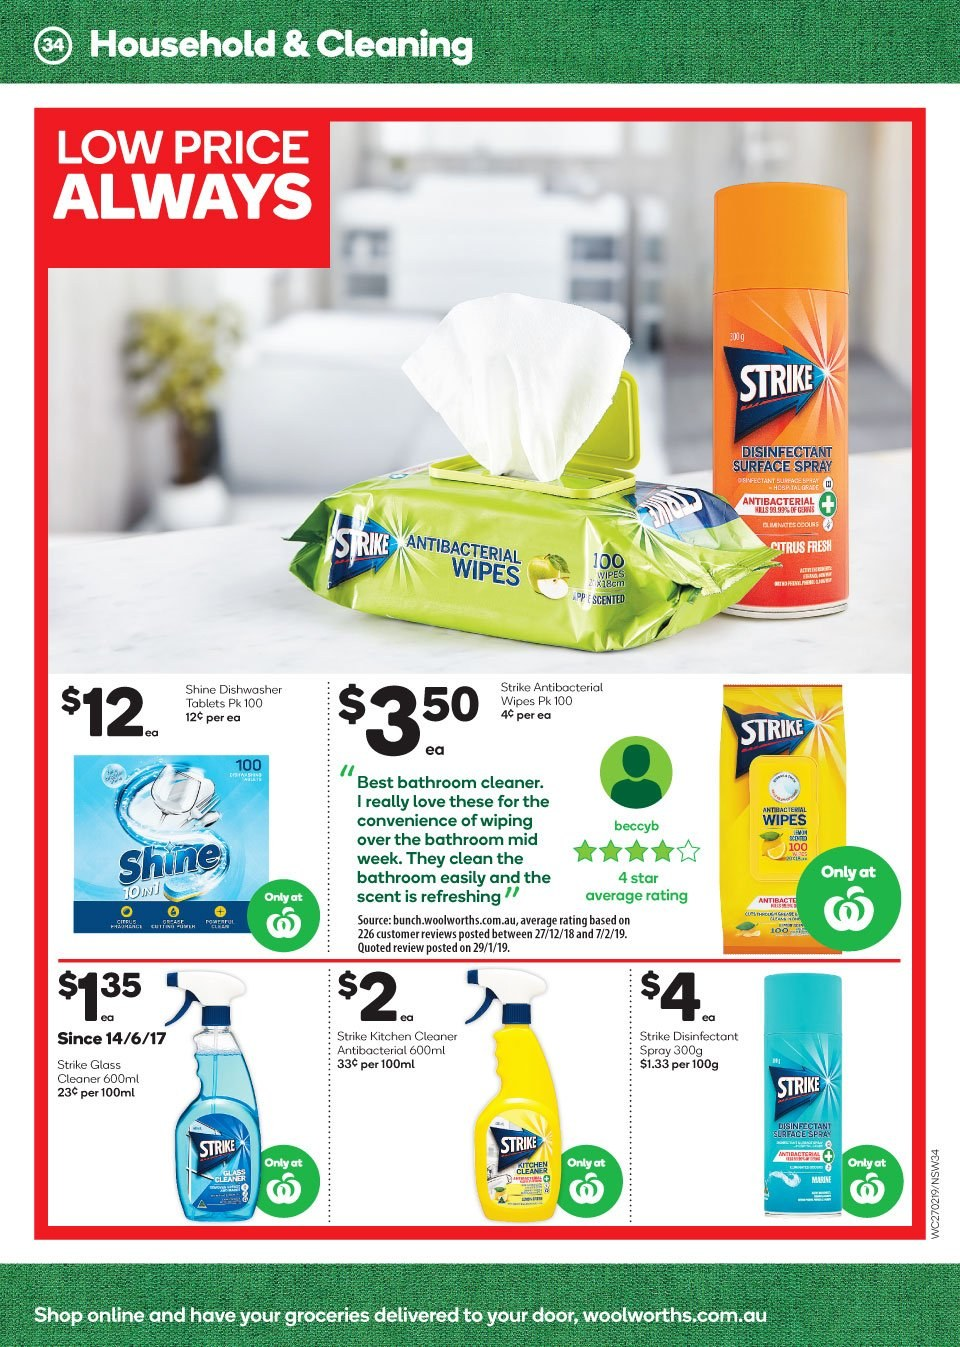 Woolworths catalogue and weekly specials 27 2 2019 - 5 3